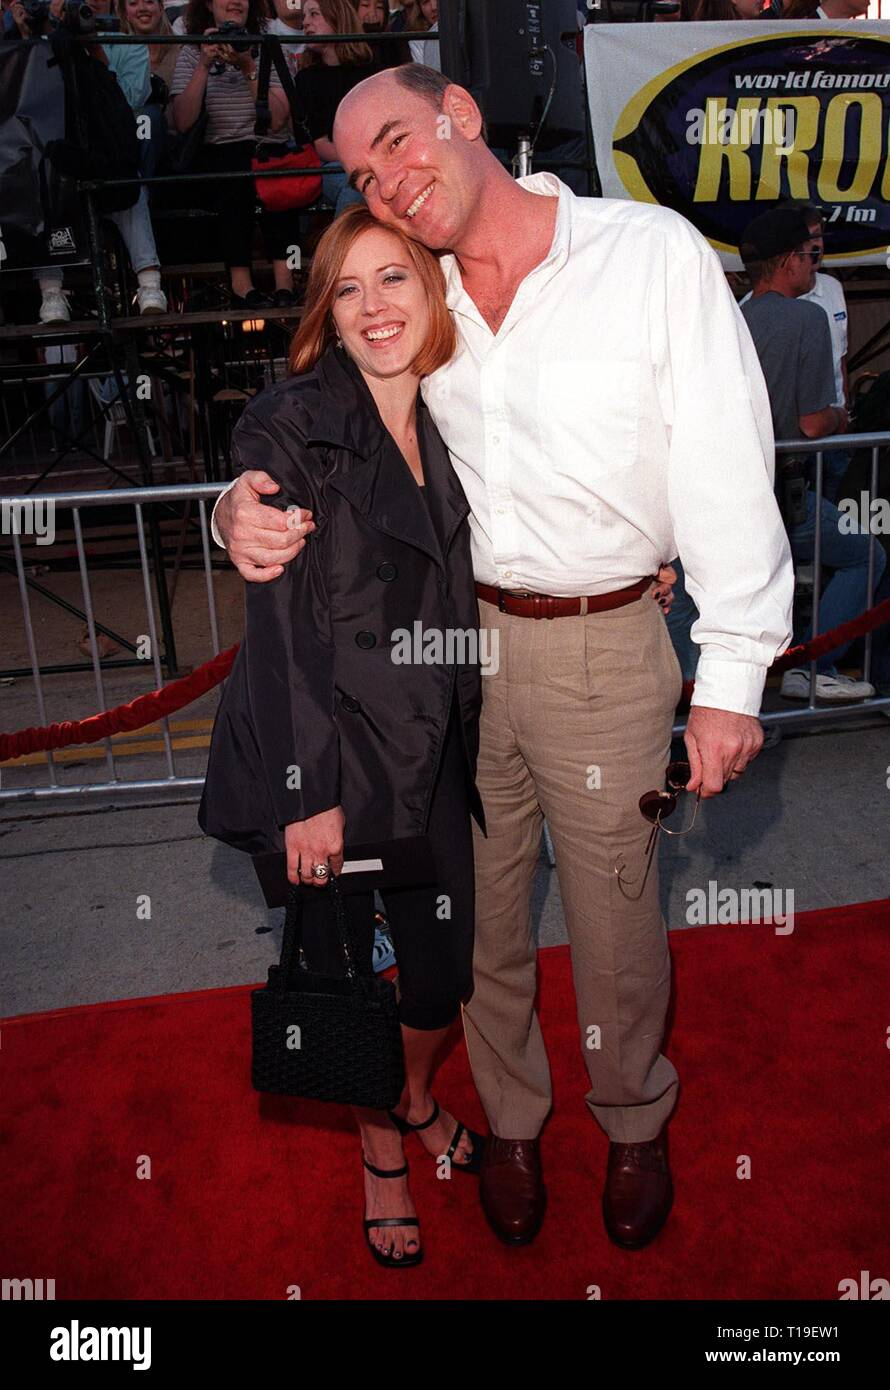 LOS ANGELES, CA - September 8, 2011:  Actor MITCH PILEGGI & wife at the world premiere, in Los Angeles, of his new movie 'The X-Files.' - Stock Image